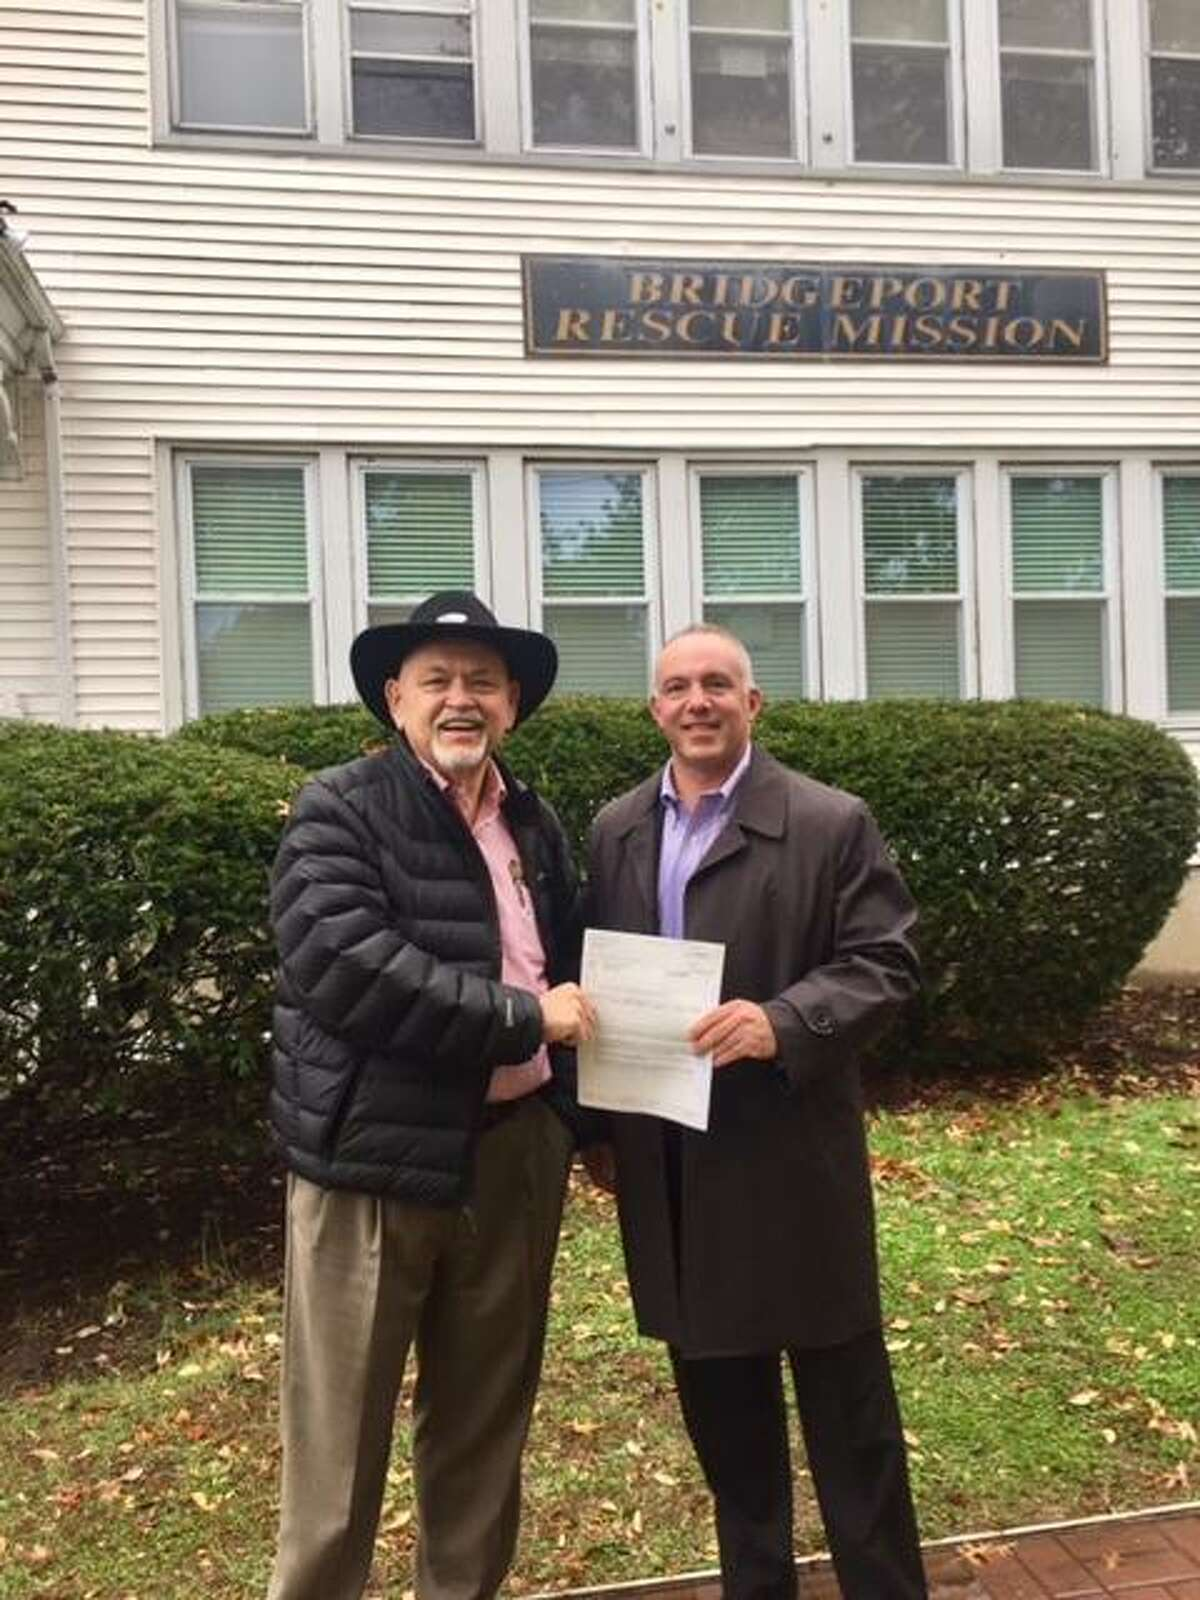 Terry Wilcox,Bridgeport Rescue Mission Executive Director, leftand Steve Delany, Enterprise Holdings' Southern New England Regional Vice President.